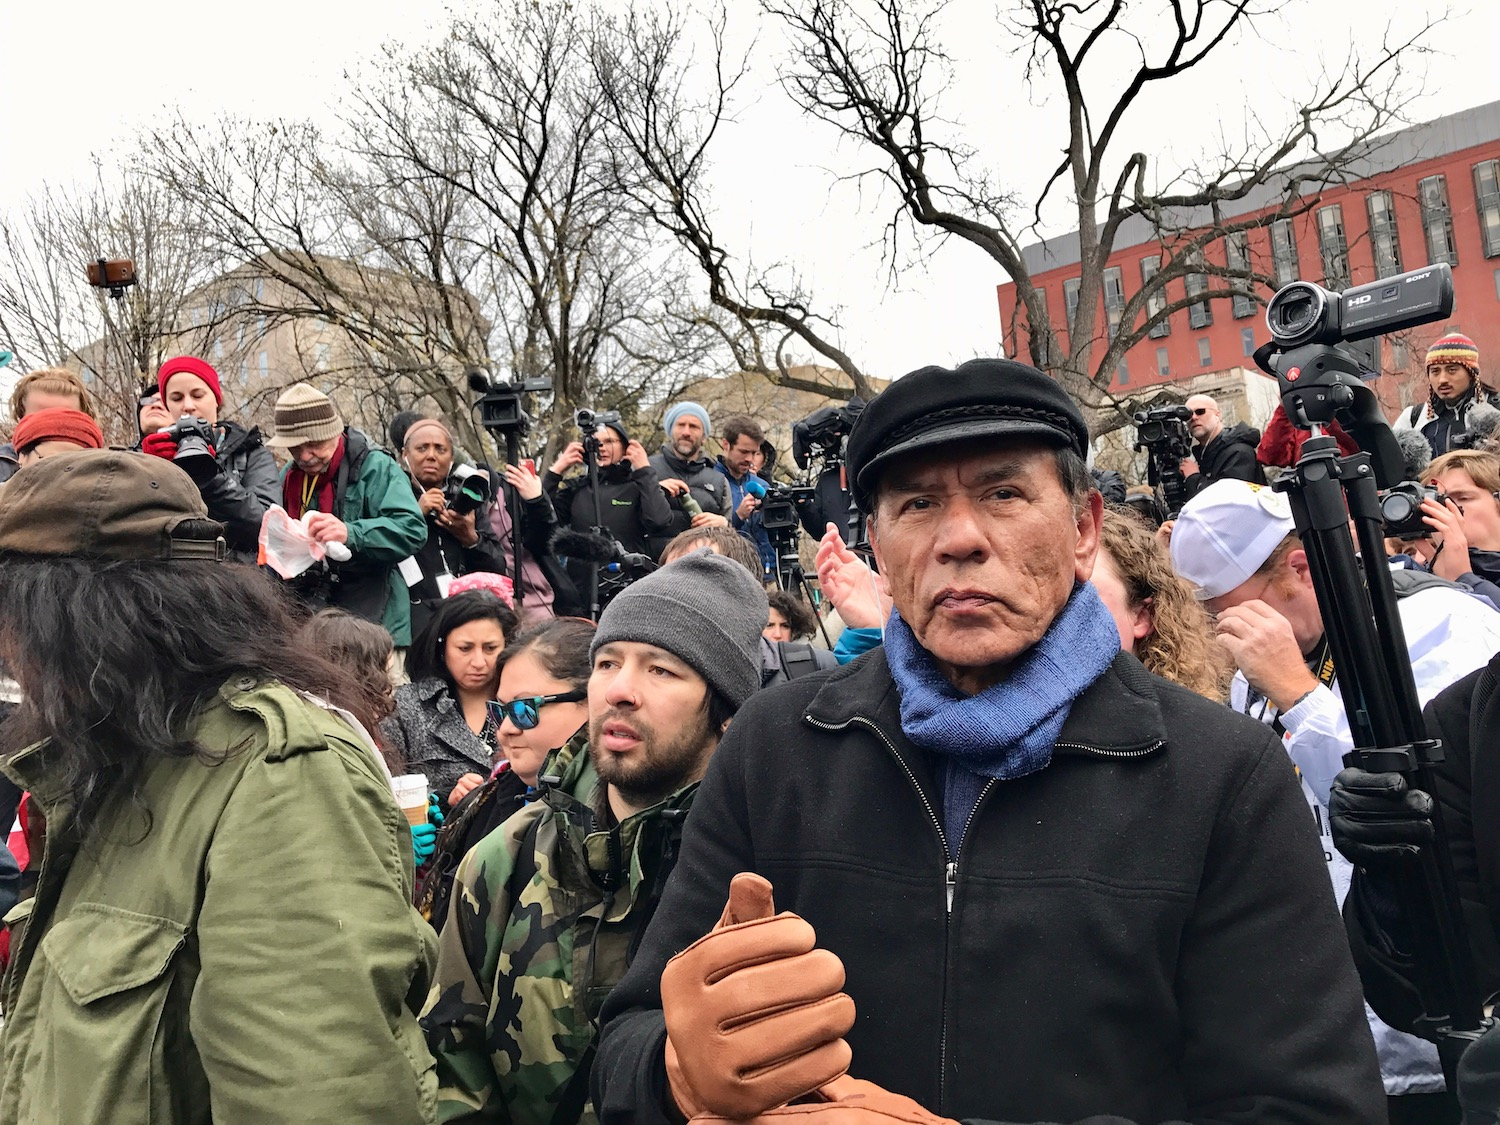 Cherokee actor Wes Studi selected as presenter for Oscar ceremony